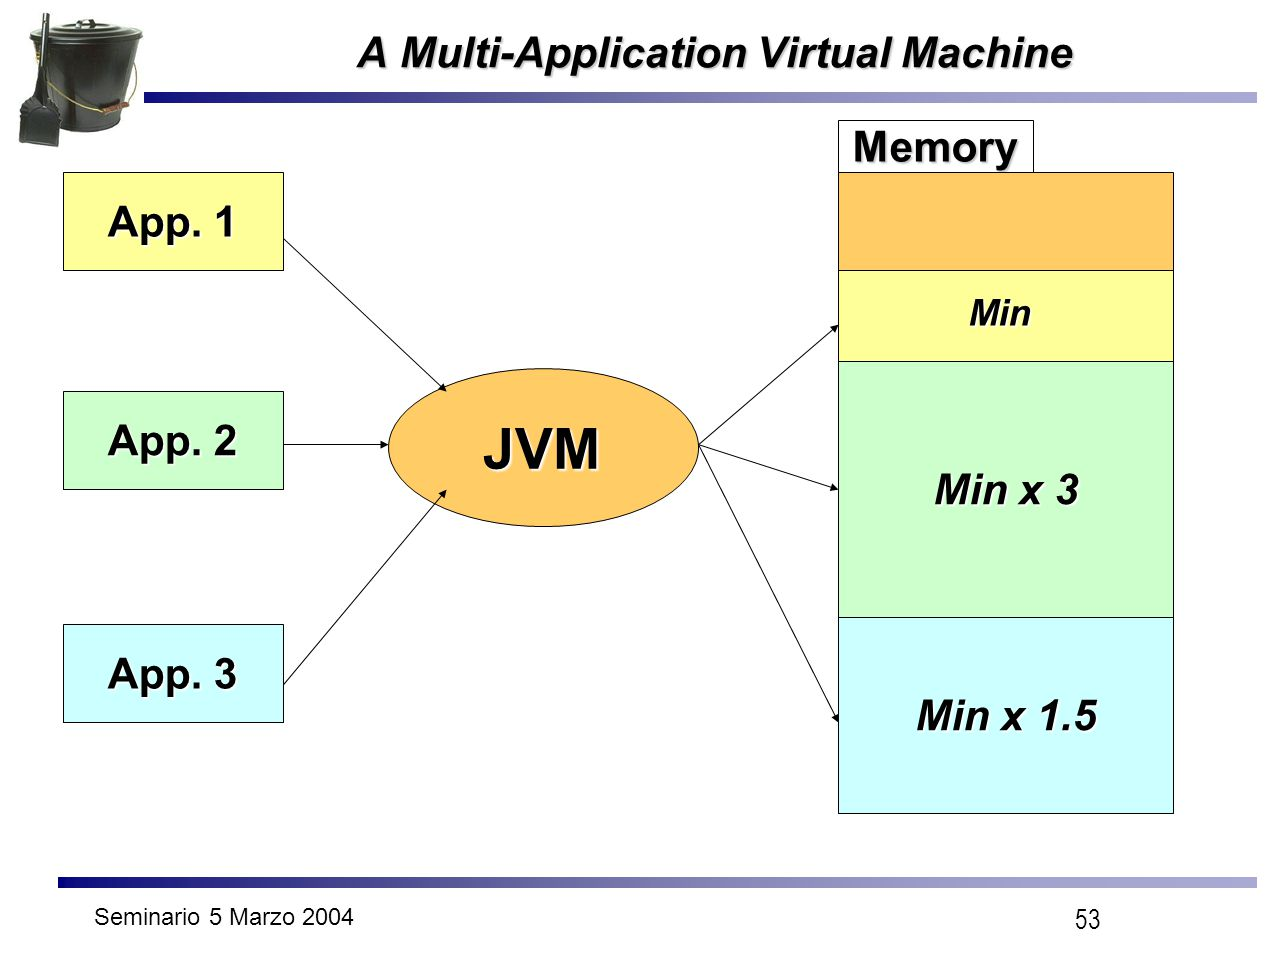 Seminario 5 Marzo 2004 53 A Multi-Application Virtual Machine JVM App. 1 App. 2 App. 3 Min Min x 3 Min x 1.5 Memory